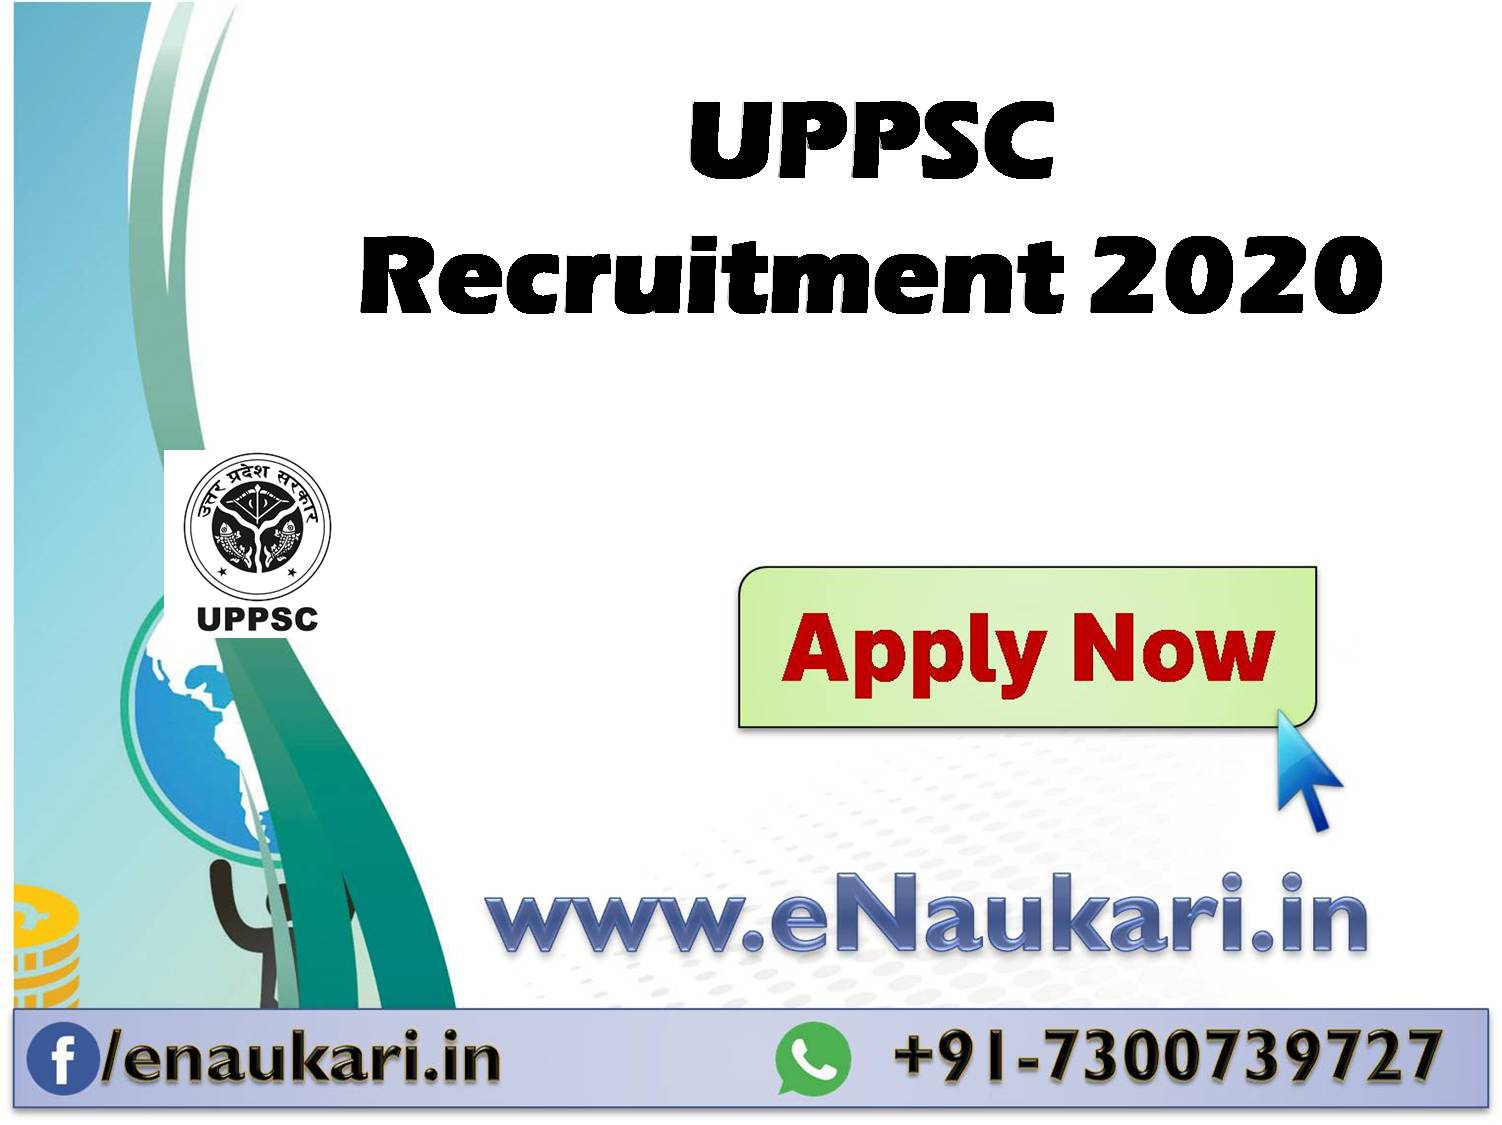 UPPSC-Recruitment-2020.